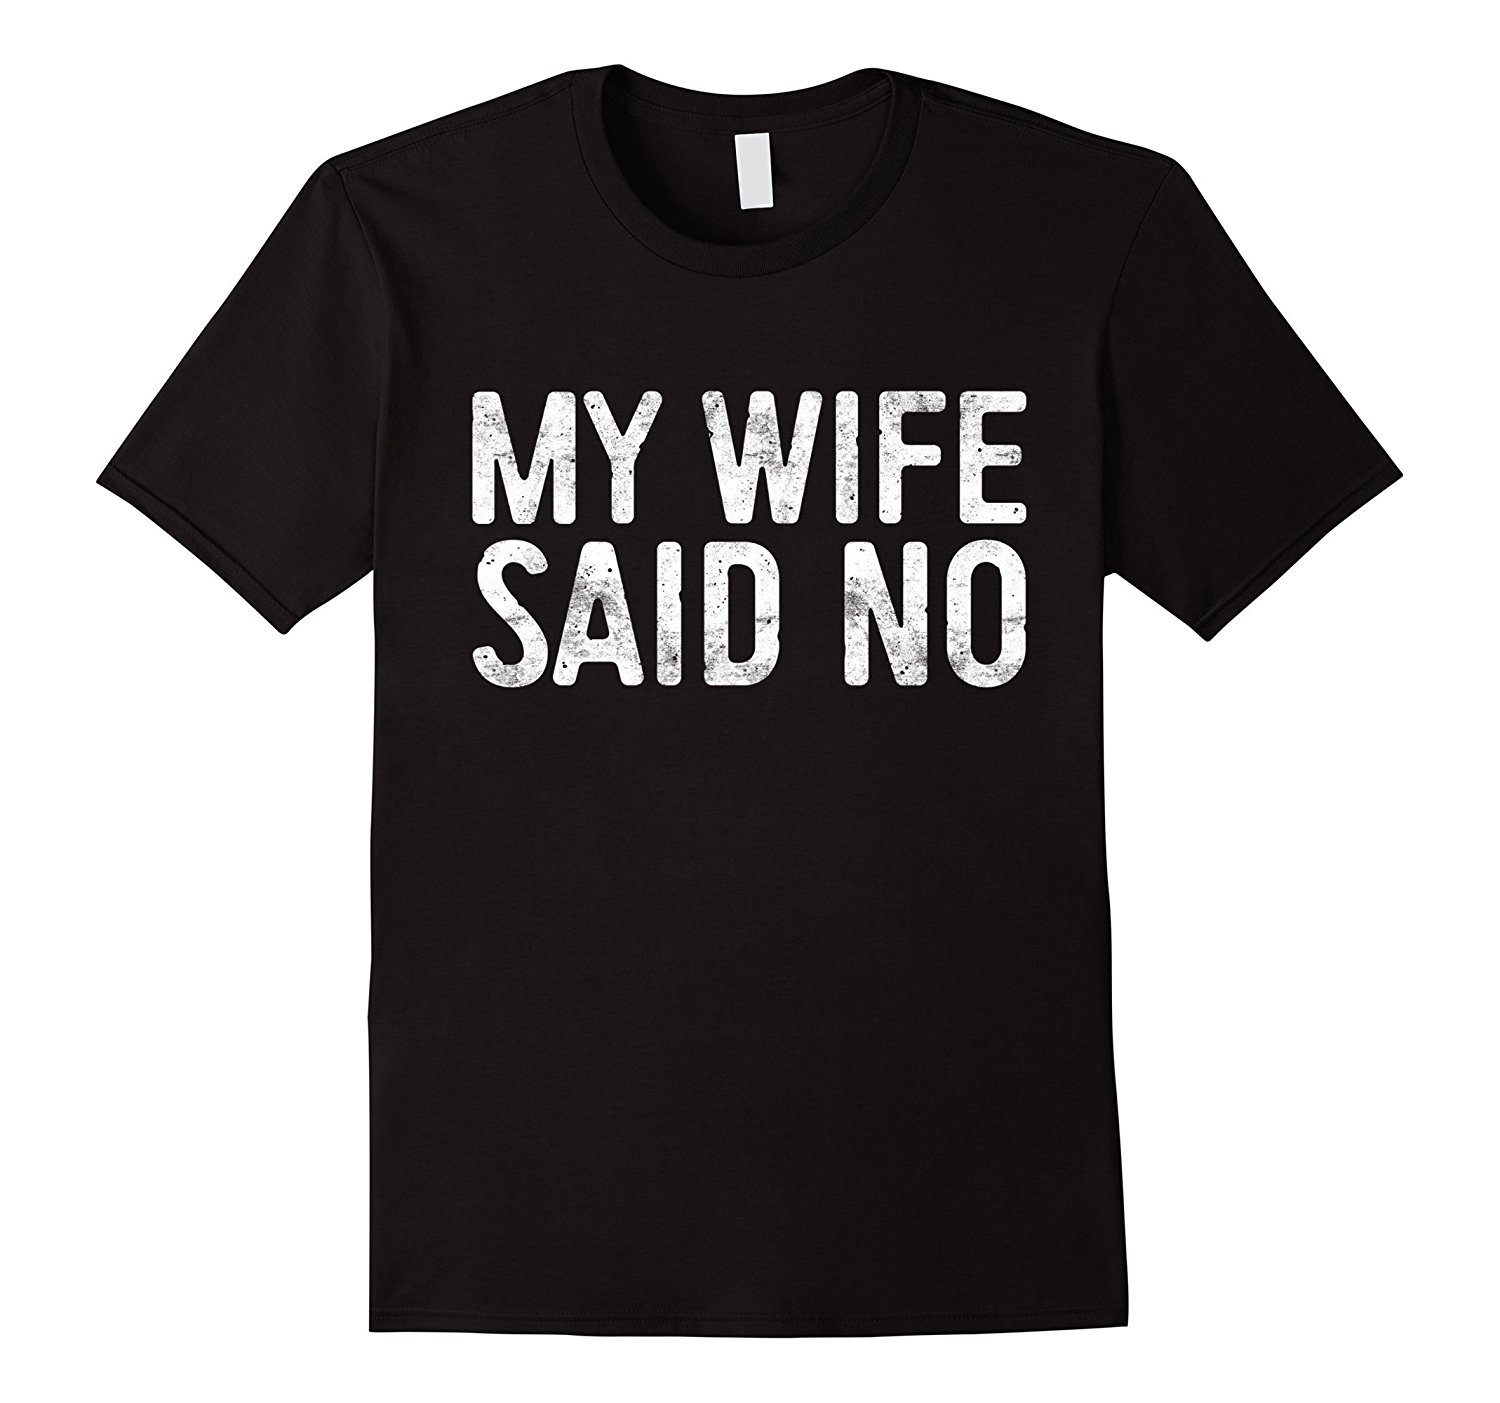 Mens My Wife Said No T Shirt Funny Husband Engagement Gift Round Neck Best Selling Male Natural Cotton T Shirt Top Tee image